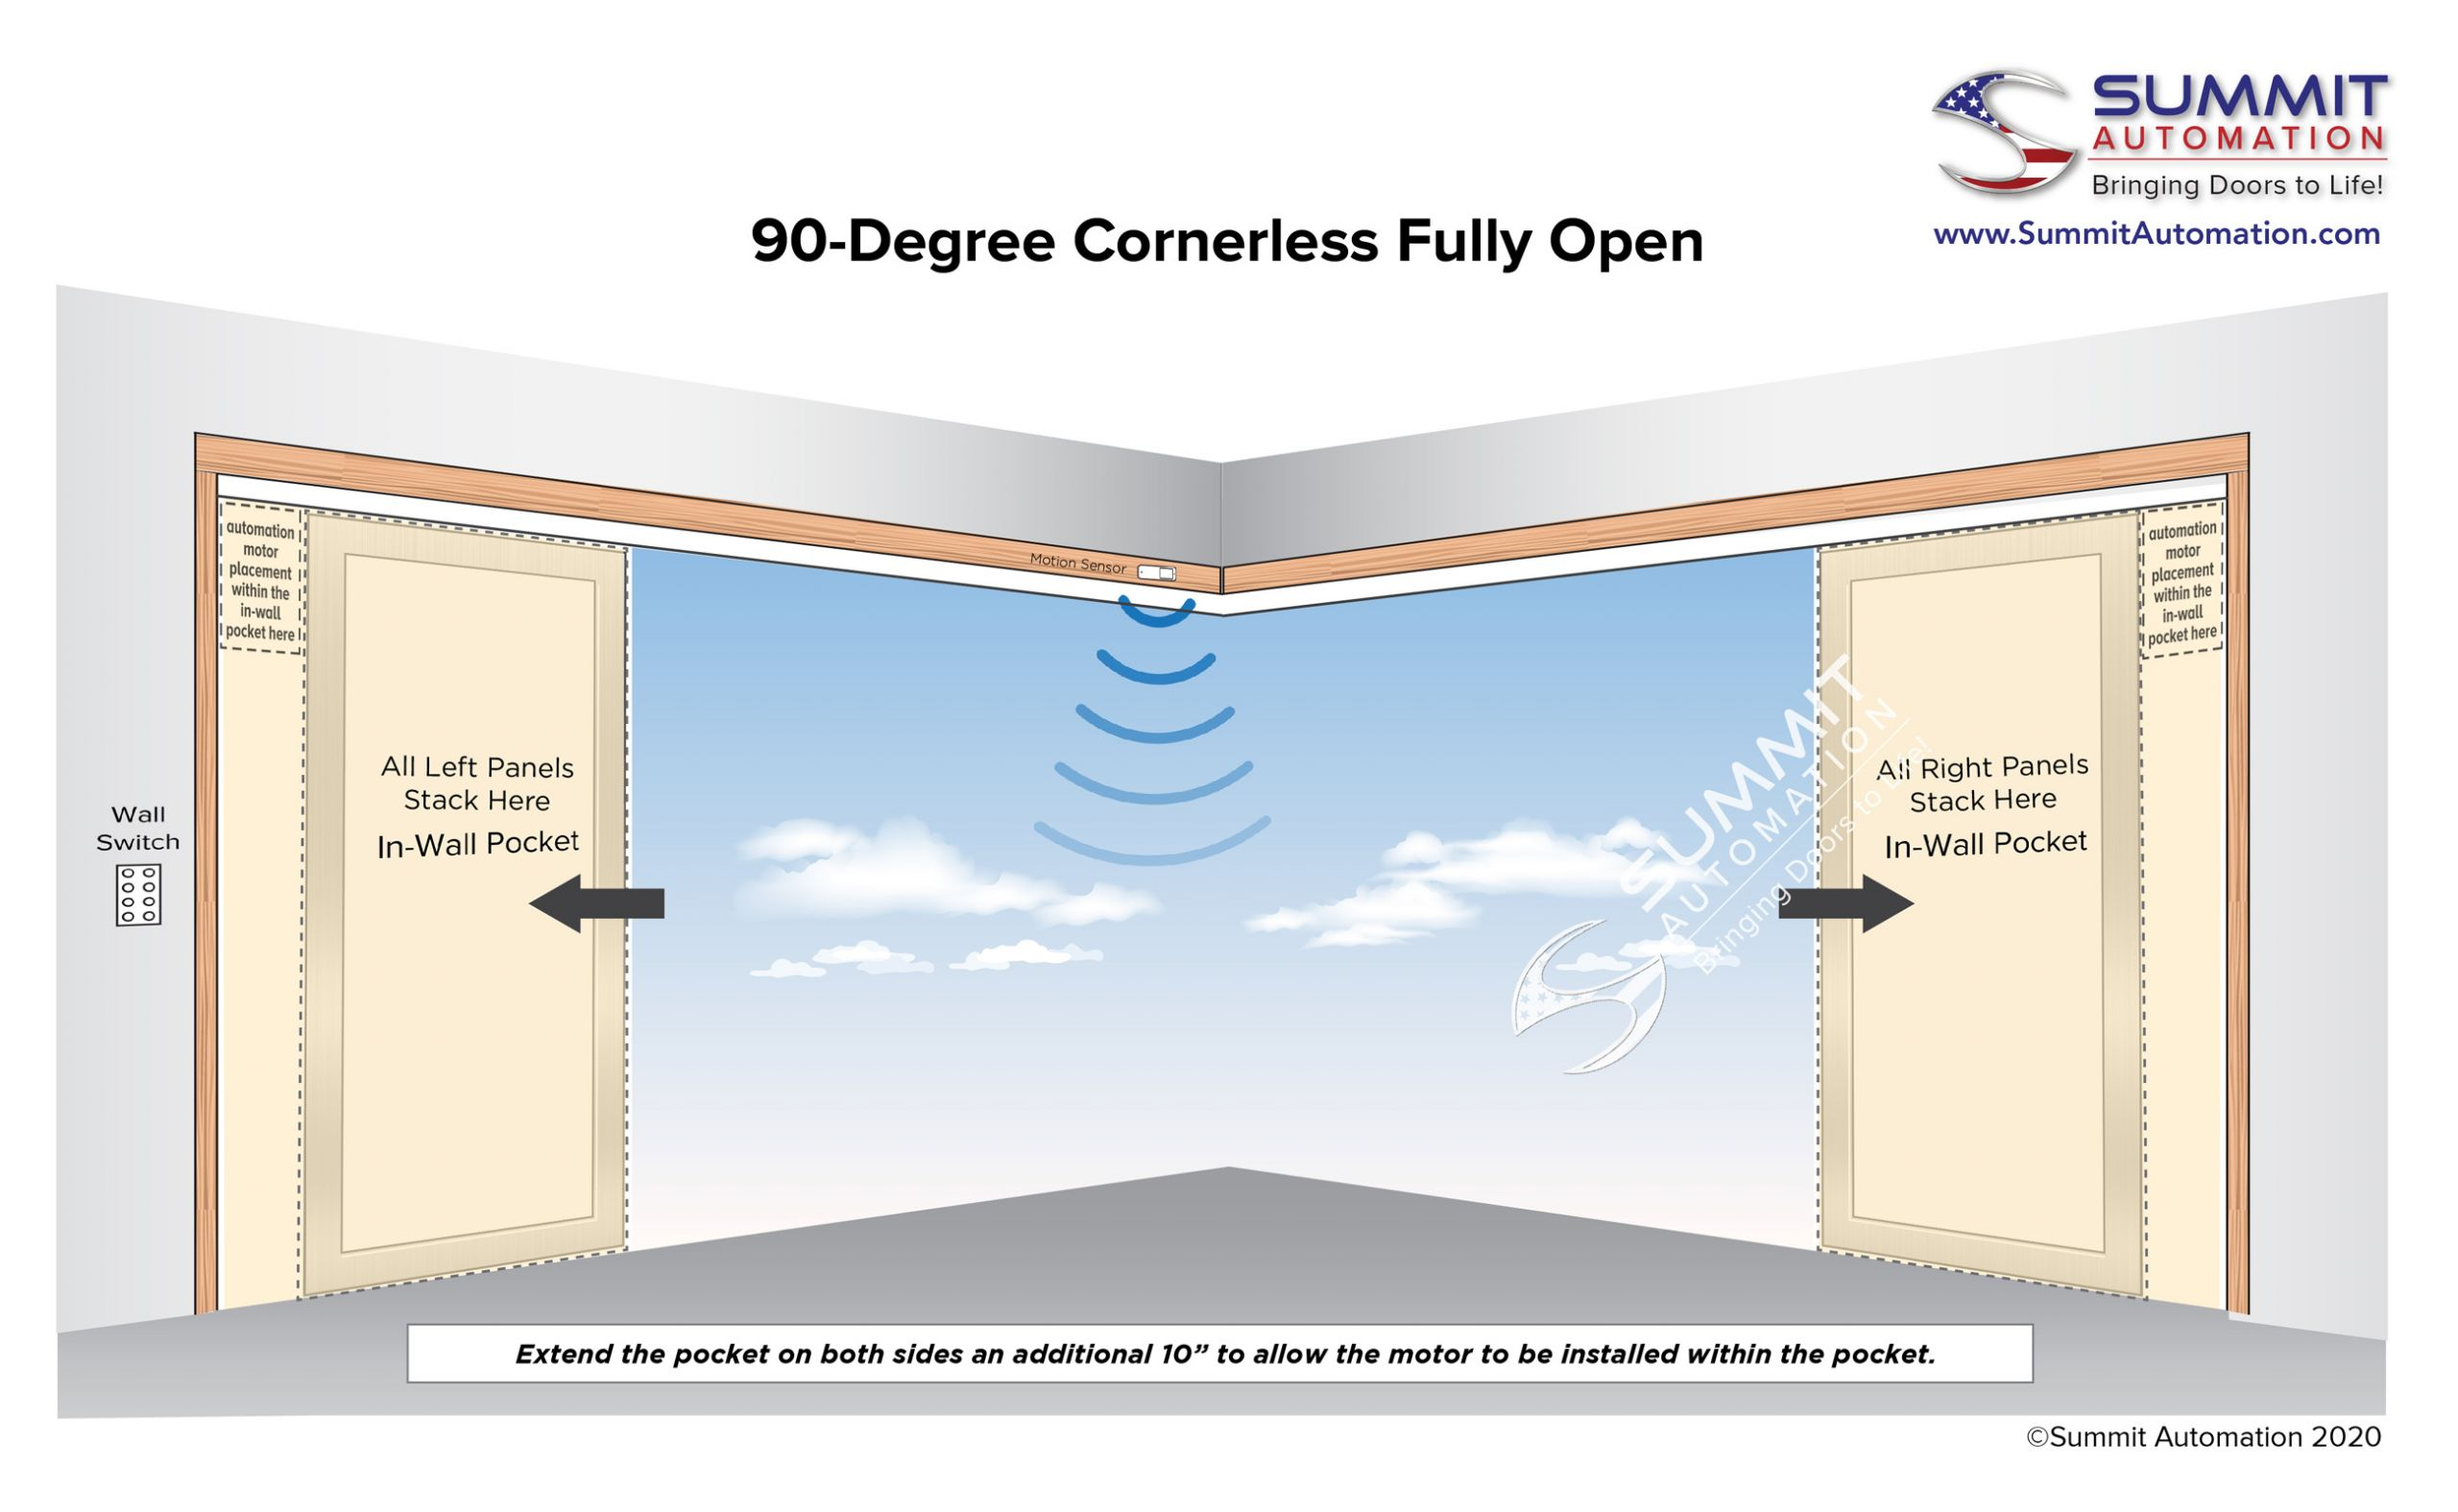 90 degree cornerless fully open diagram